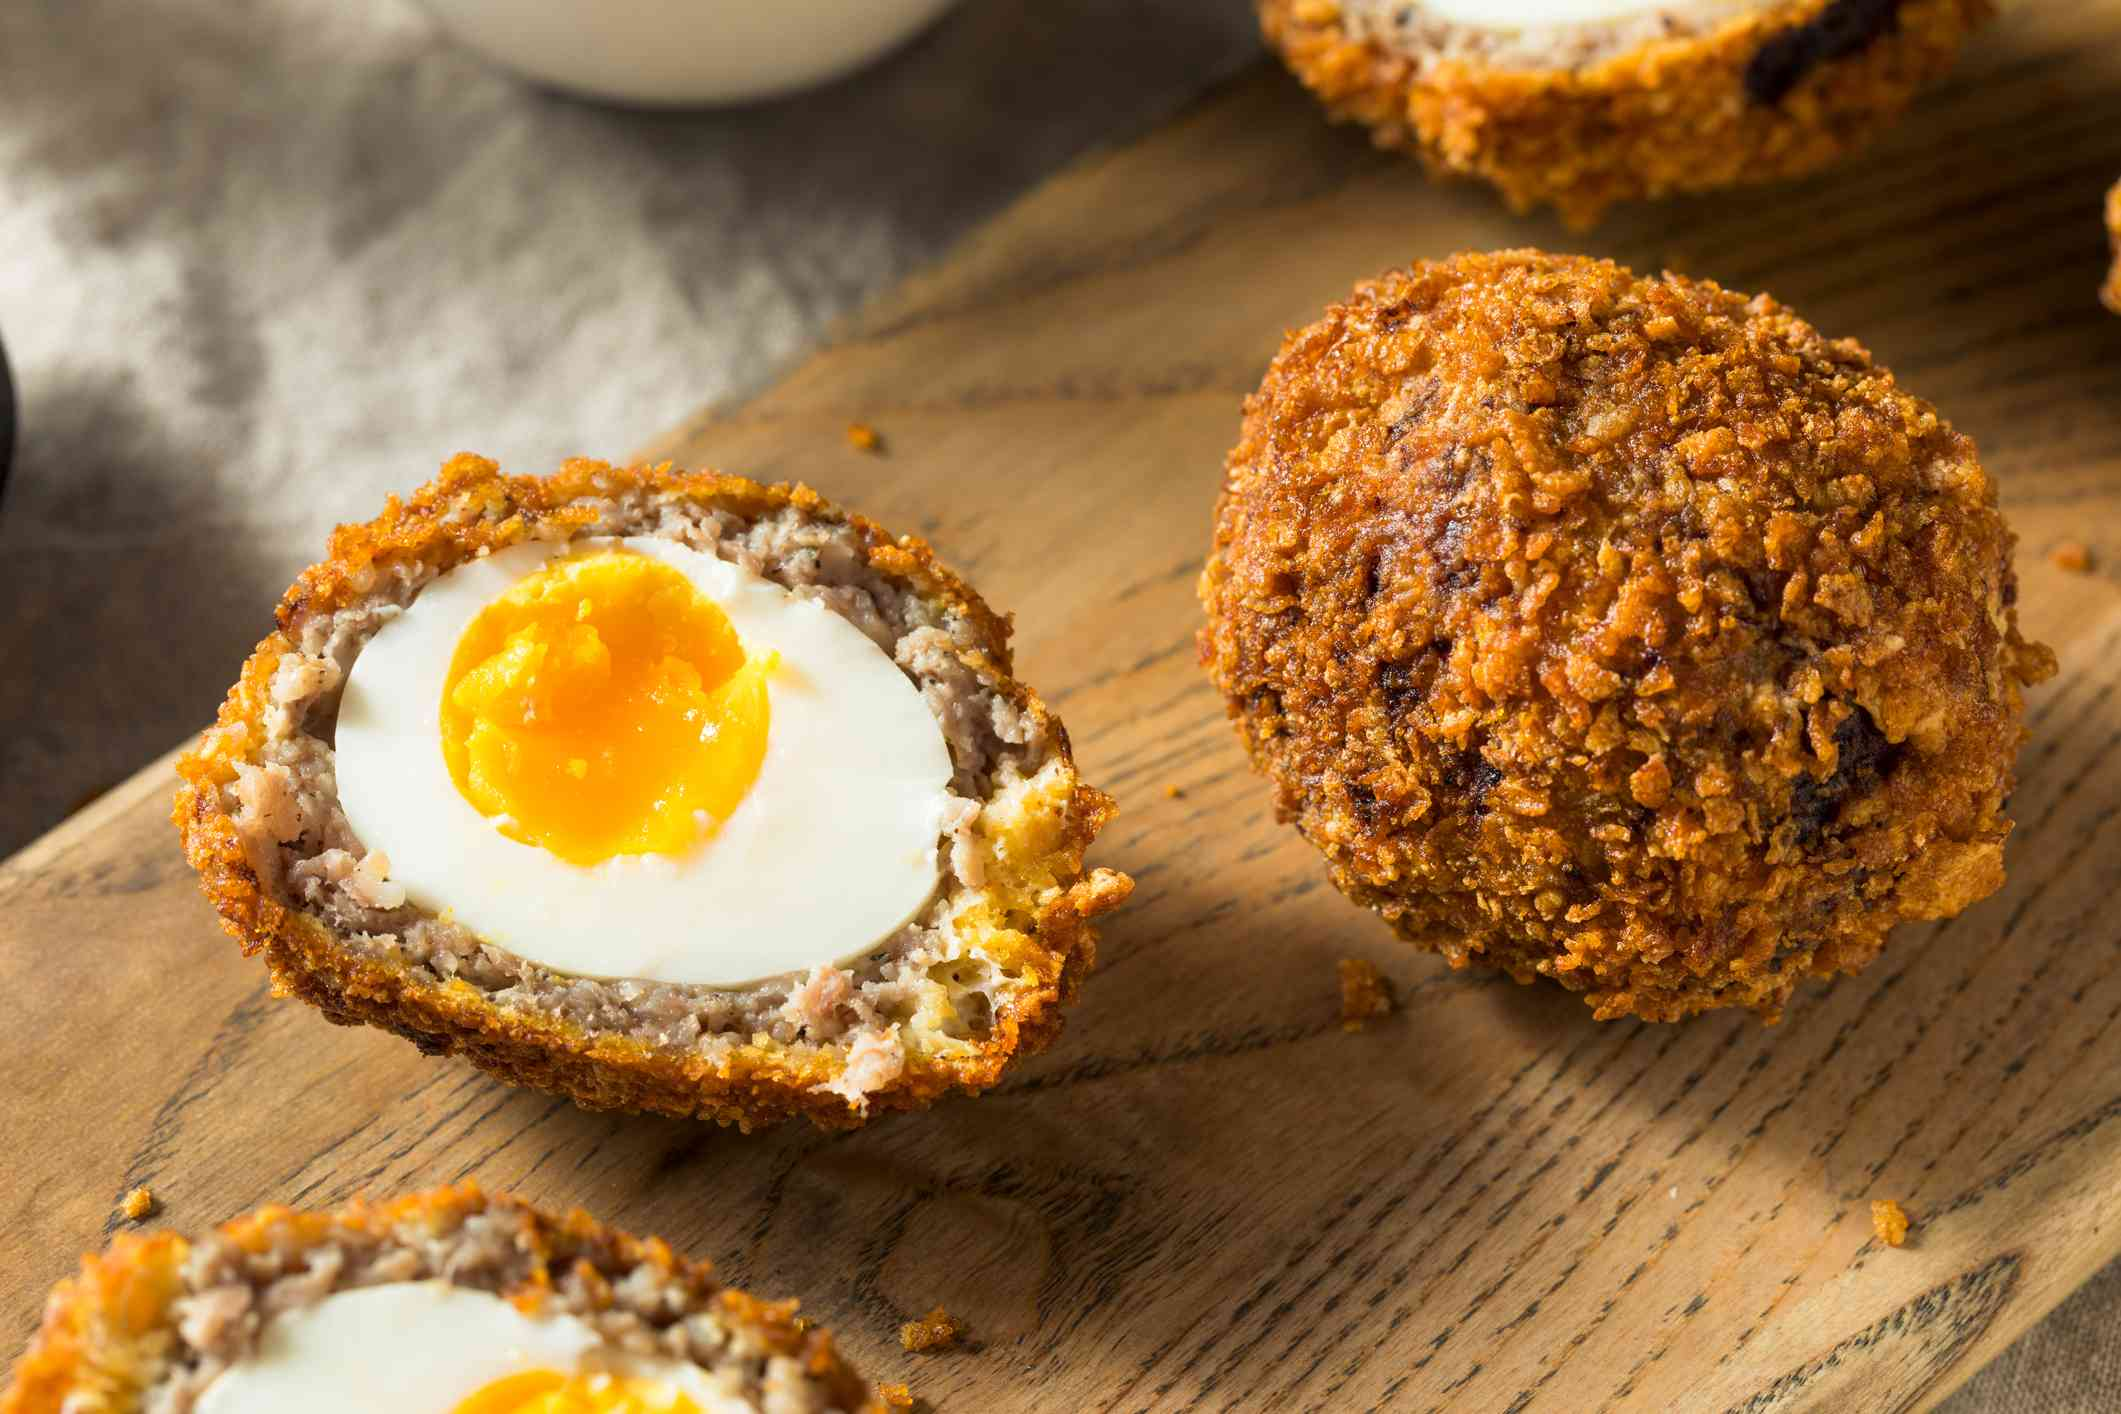 egg wrapped in sausage meat and crumbs and deep fried